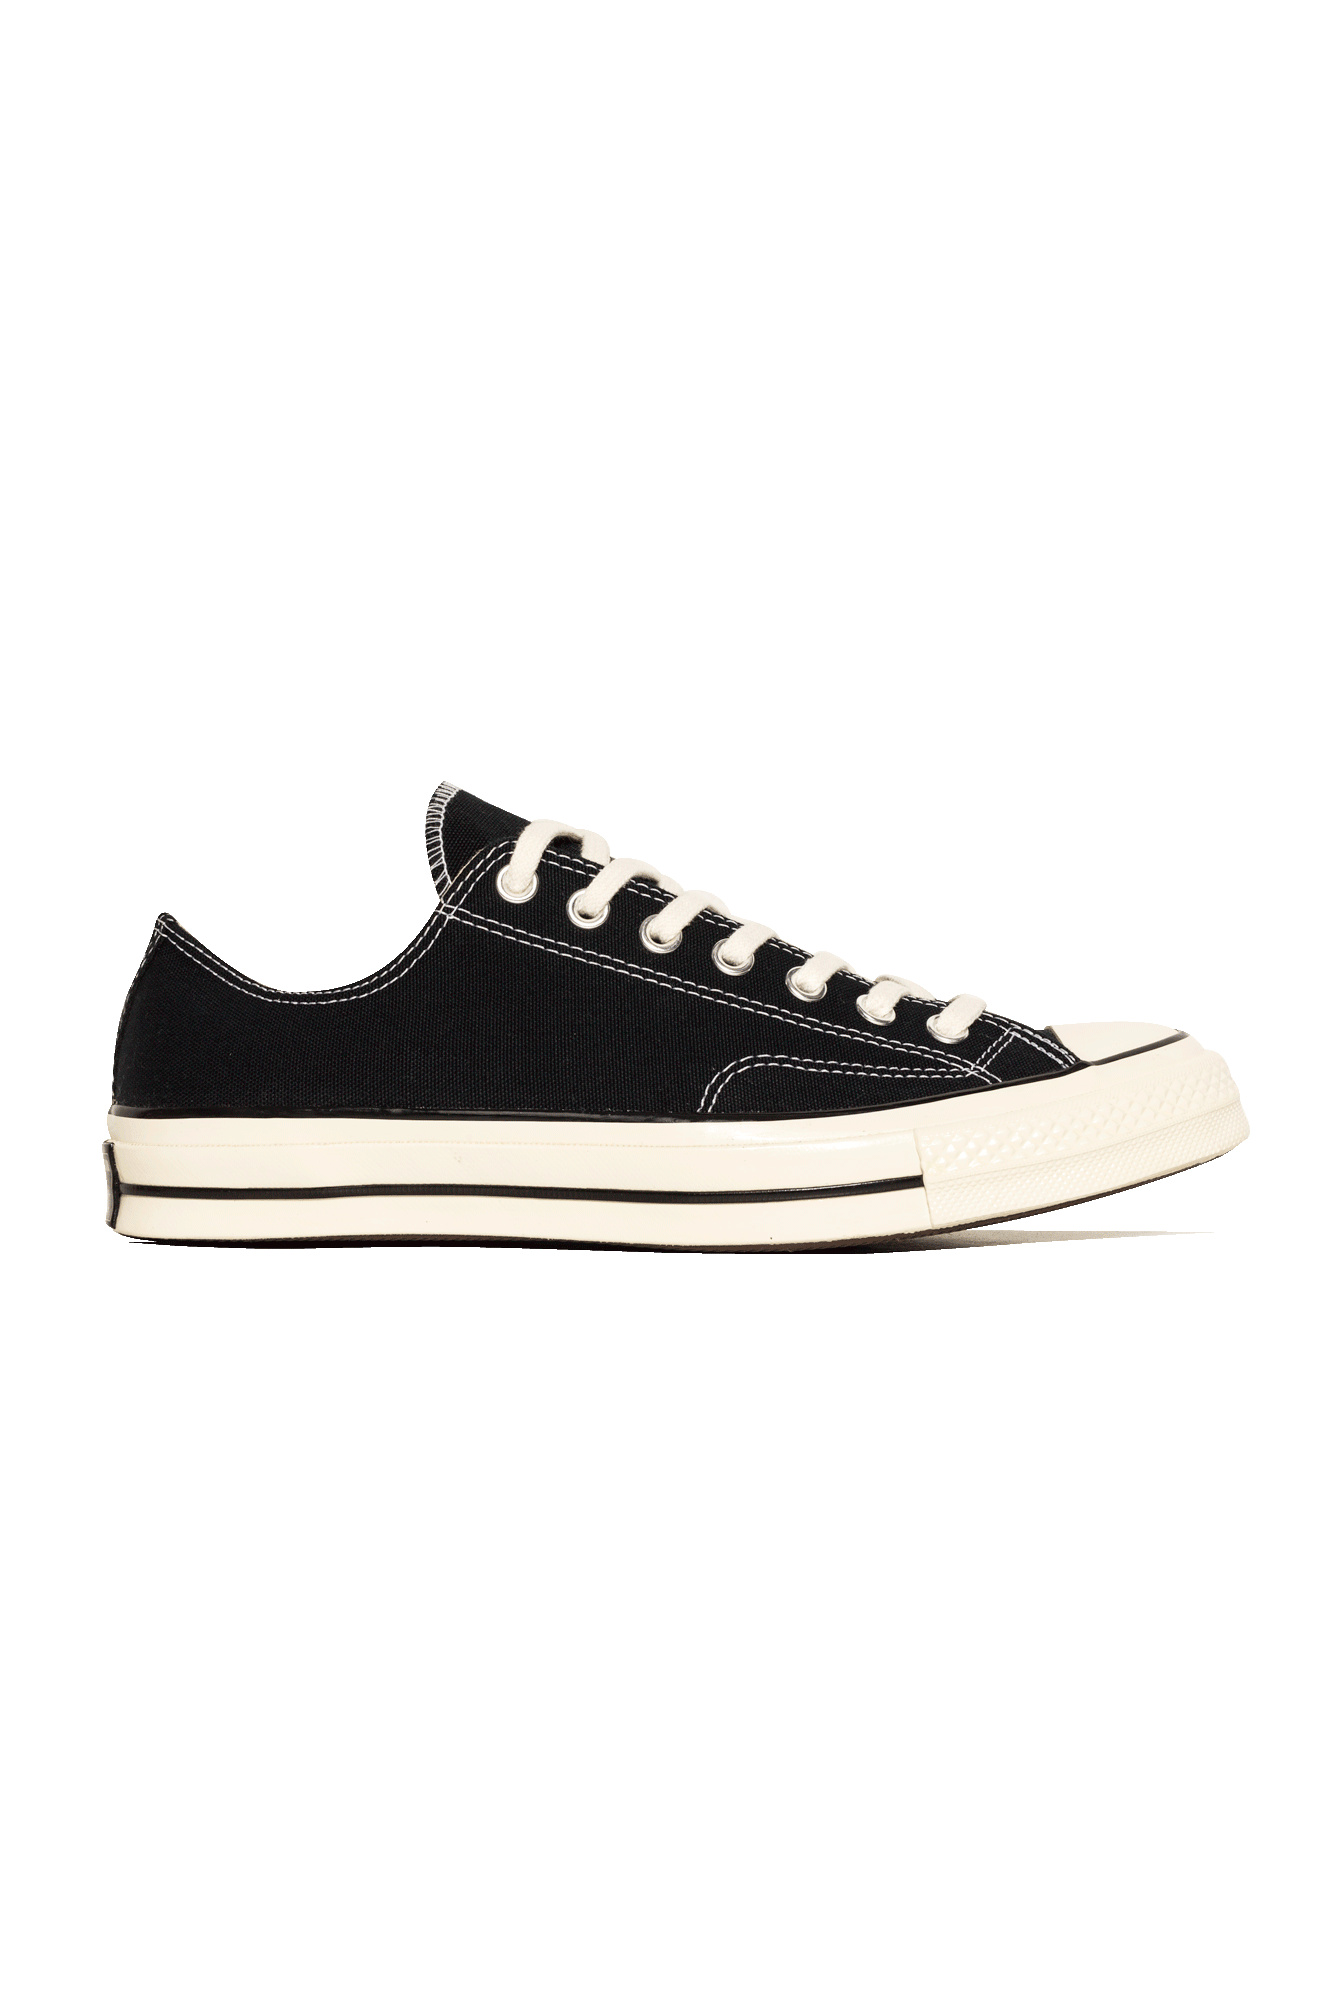 Converse Sneakers Chuck Taylor All Star 70 Nero 162058C#000#C0010#6,5 - One Block Down